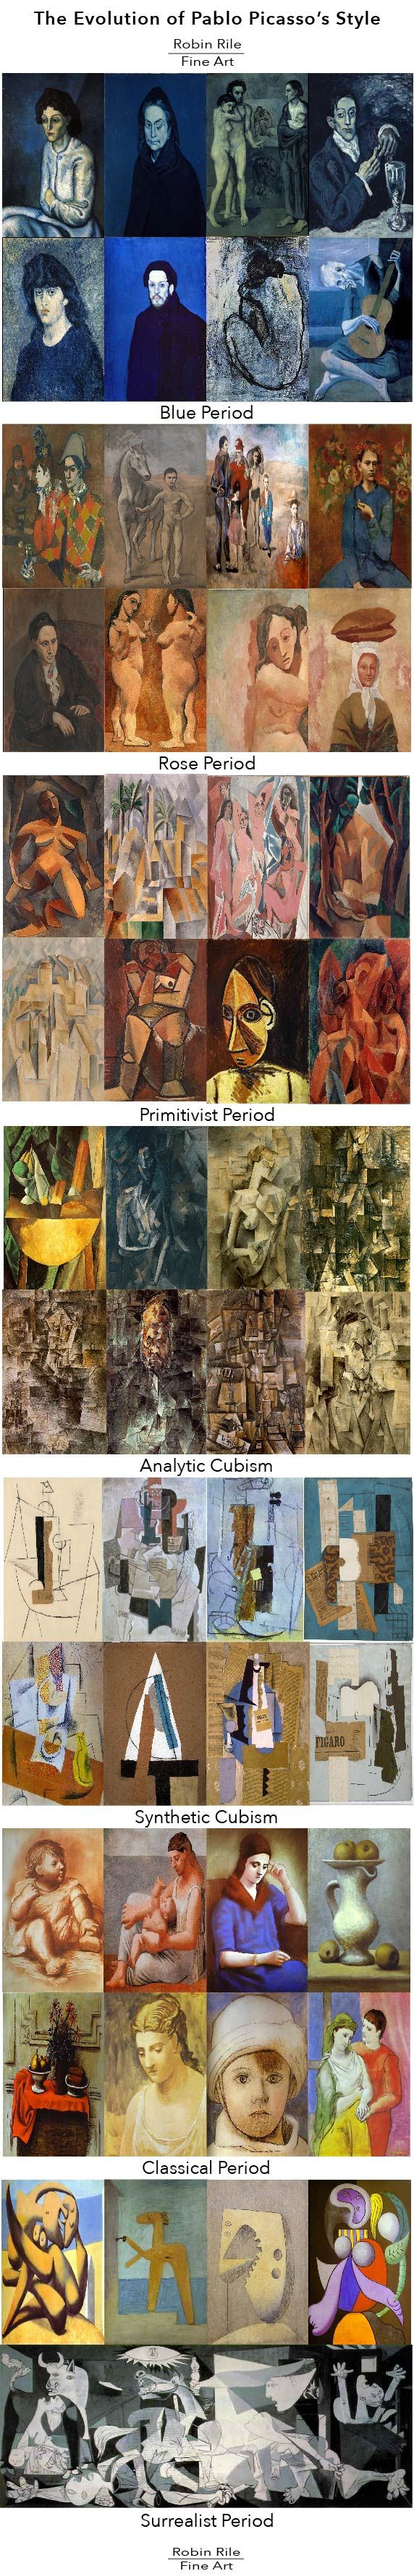 These are the distinct styles and Periods of Spanish Artist Pablo Picasso. For more information on the works see our blog post on ROBIN RILE | FINE ART www.robinrile.com/blog